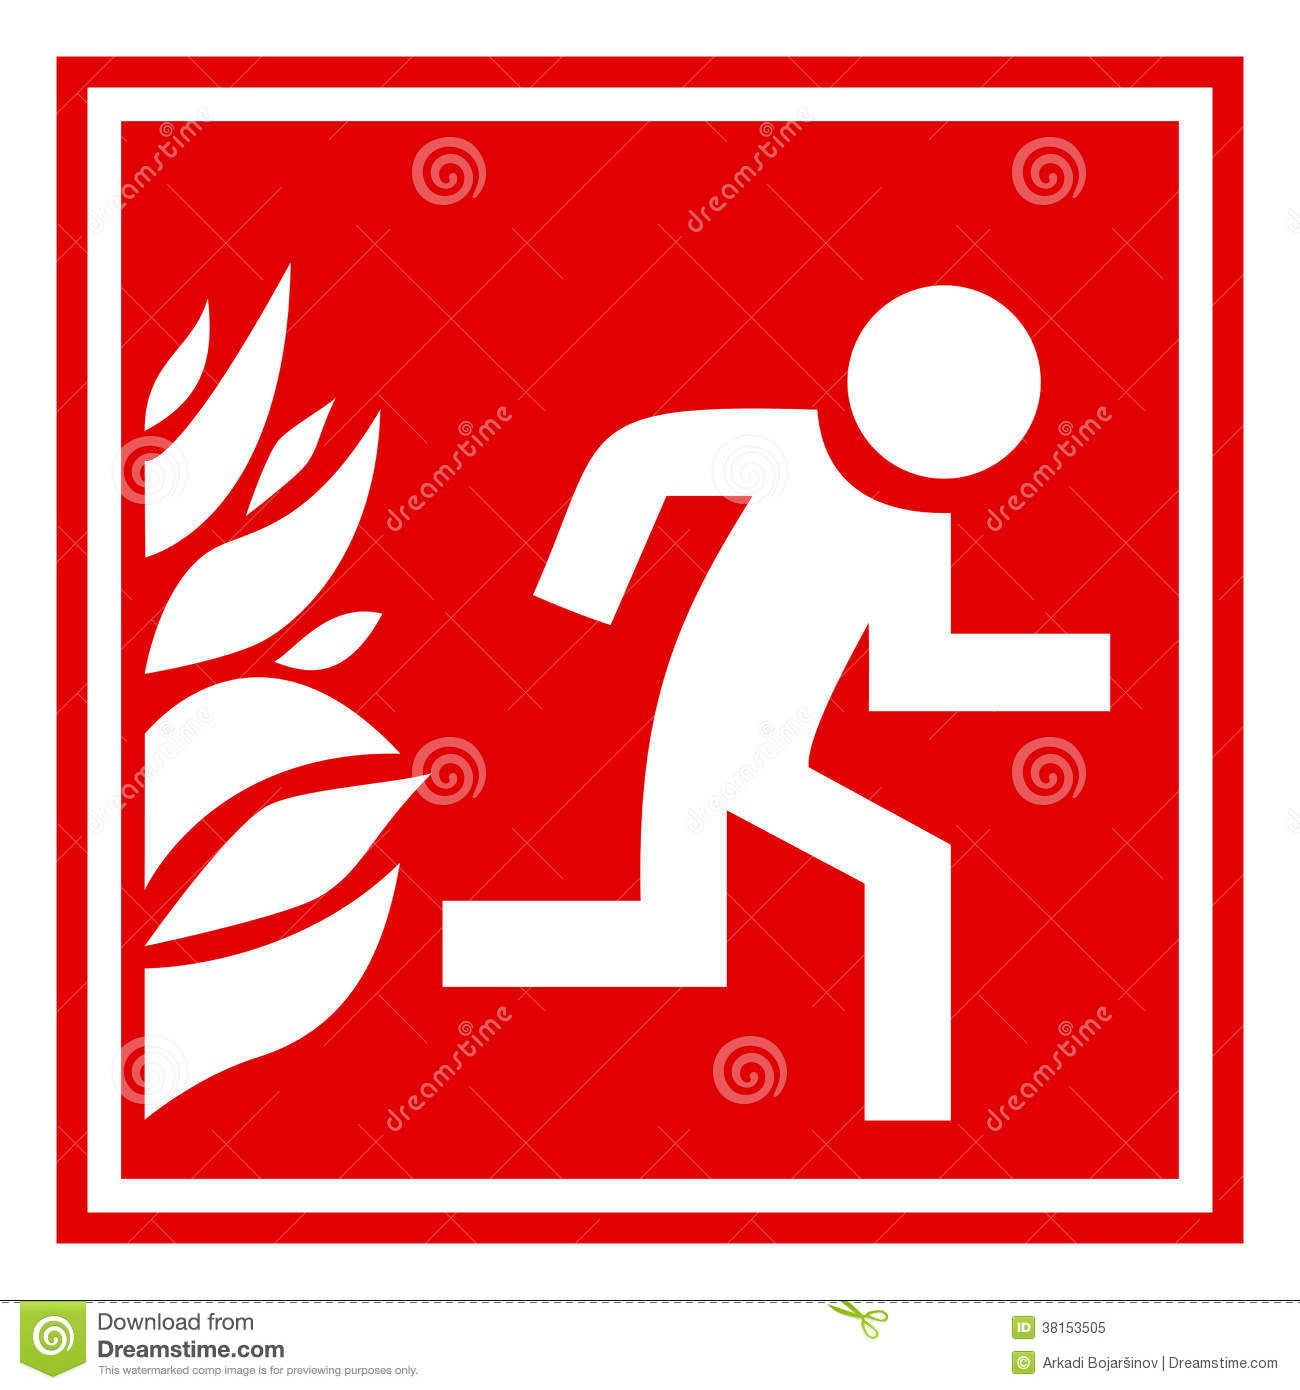 Fire Evacuation Sign Royalty Free Stock Photo - Image: 38153505